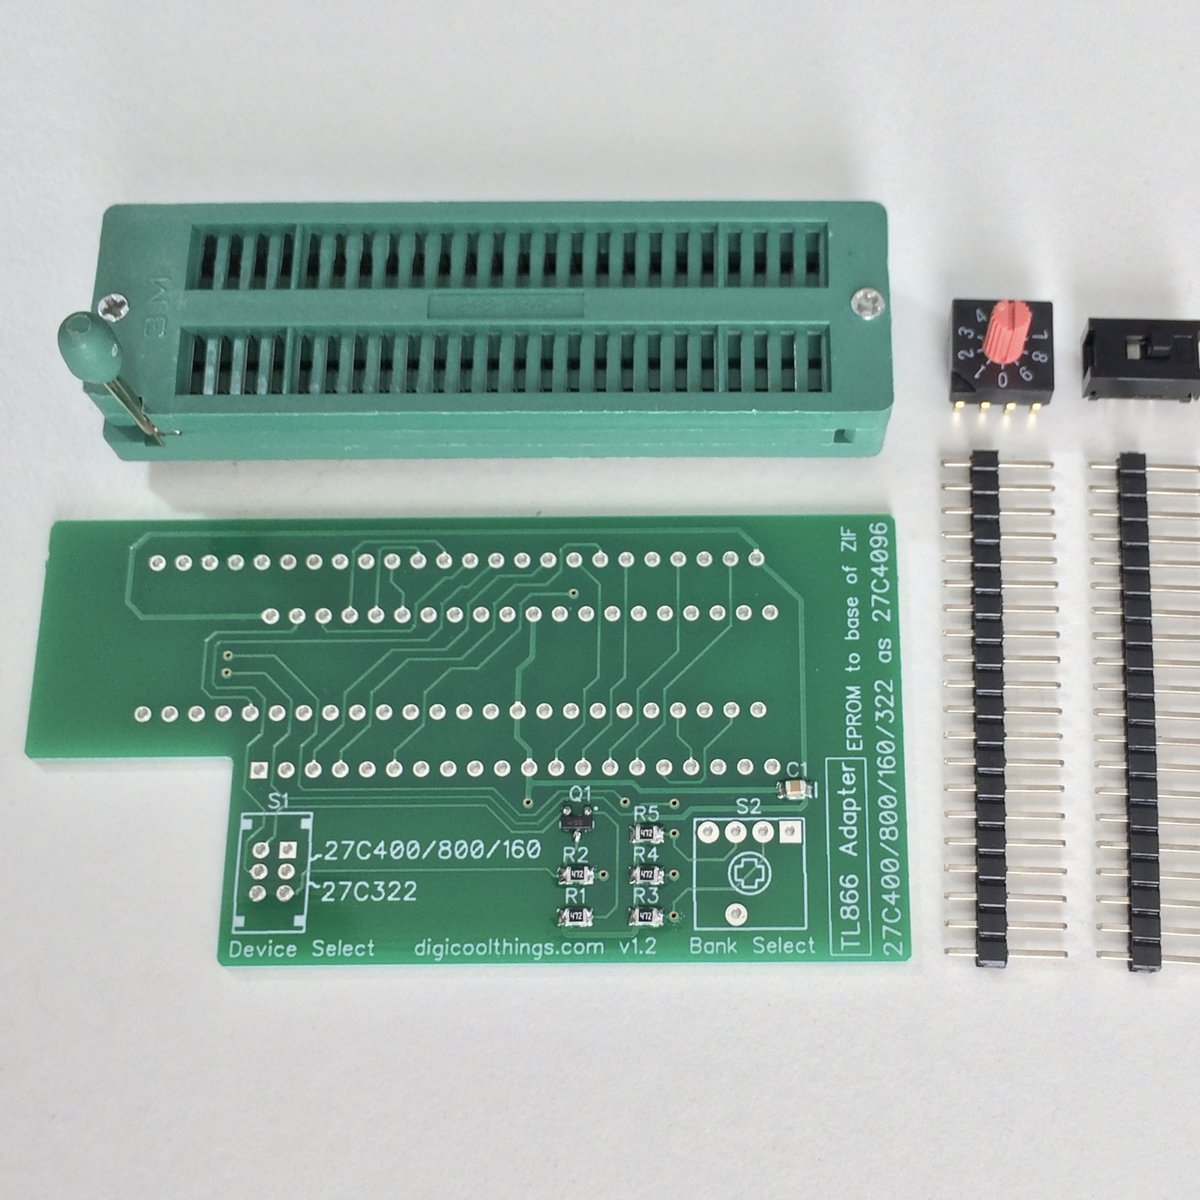 TL866 Adapter for 27C322 & 27C400 /800 /160 EPROMs from